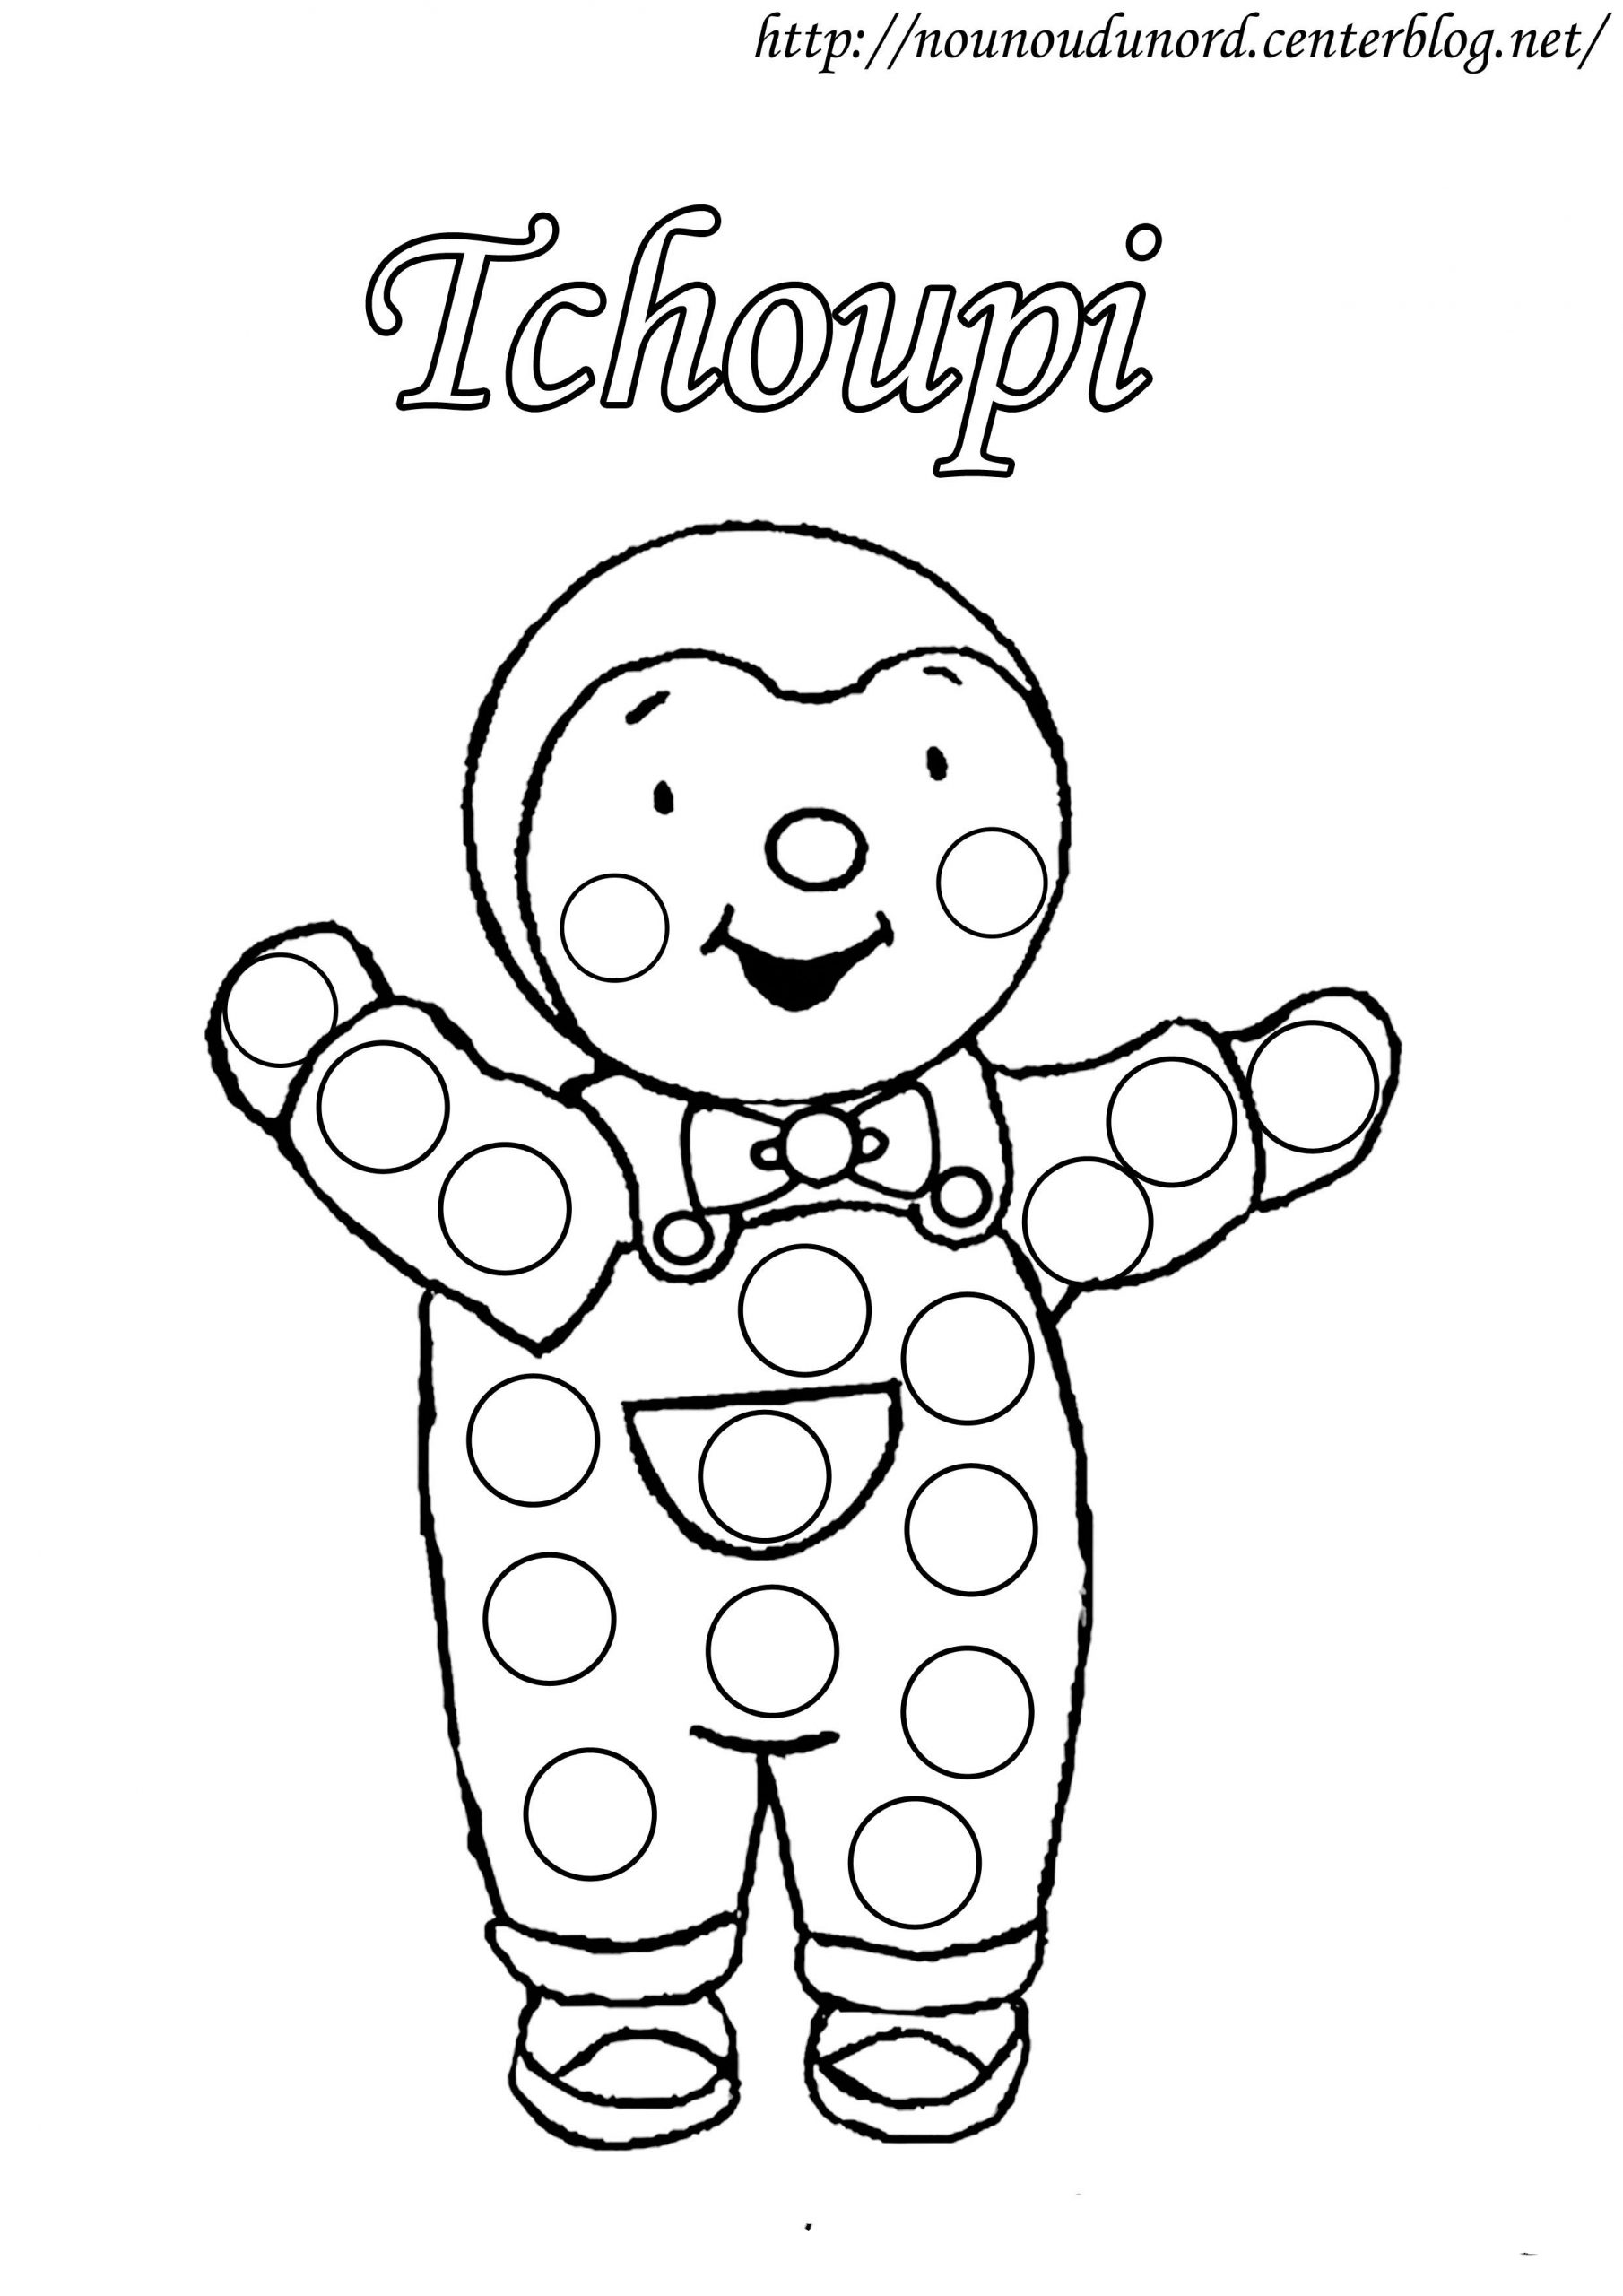 Wallpapers Dessin Coloriage Tchoupi Imprimer | Coloriage destiné Coloriage De Tchoupi Et Doudou